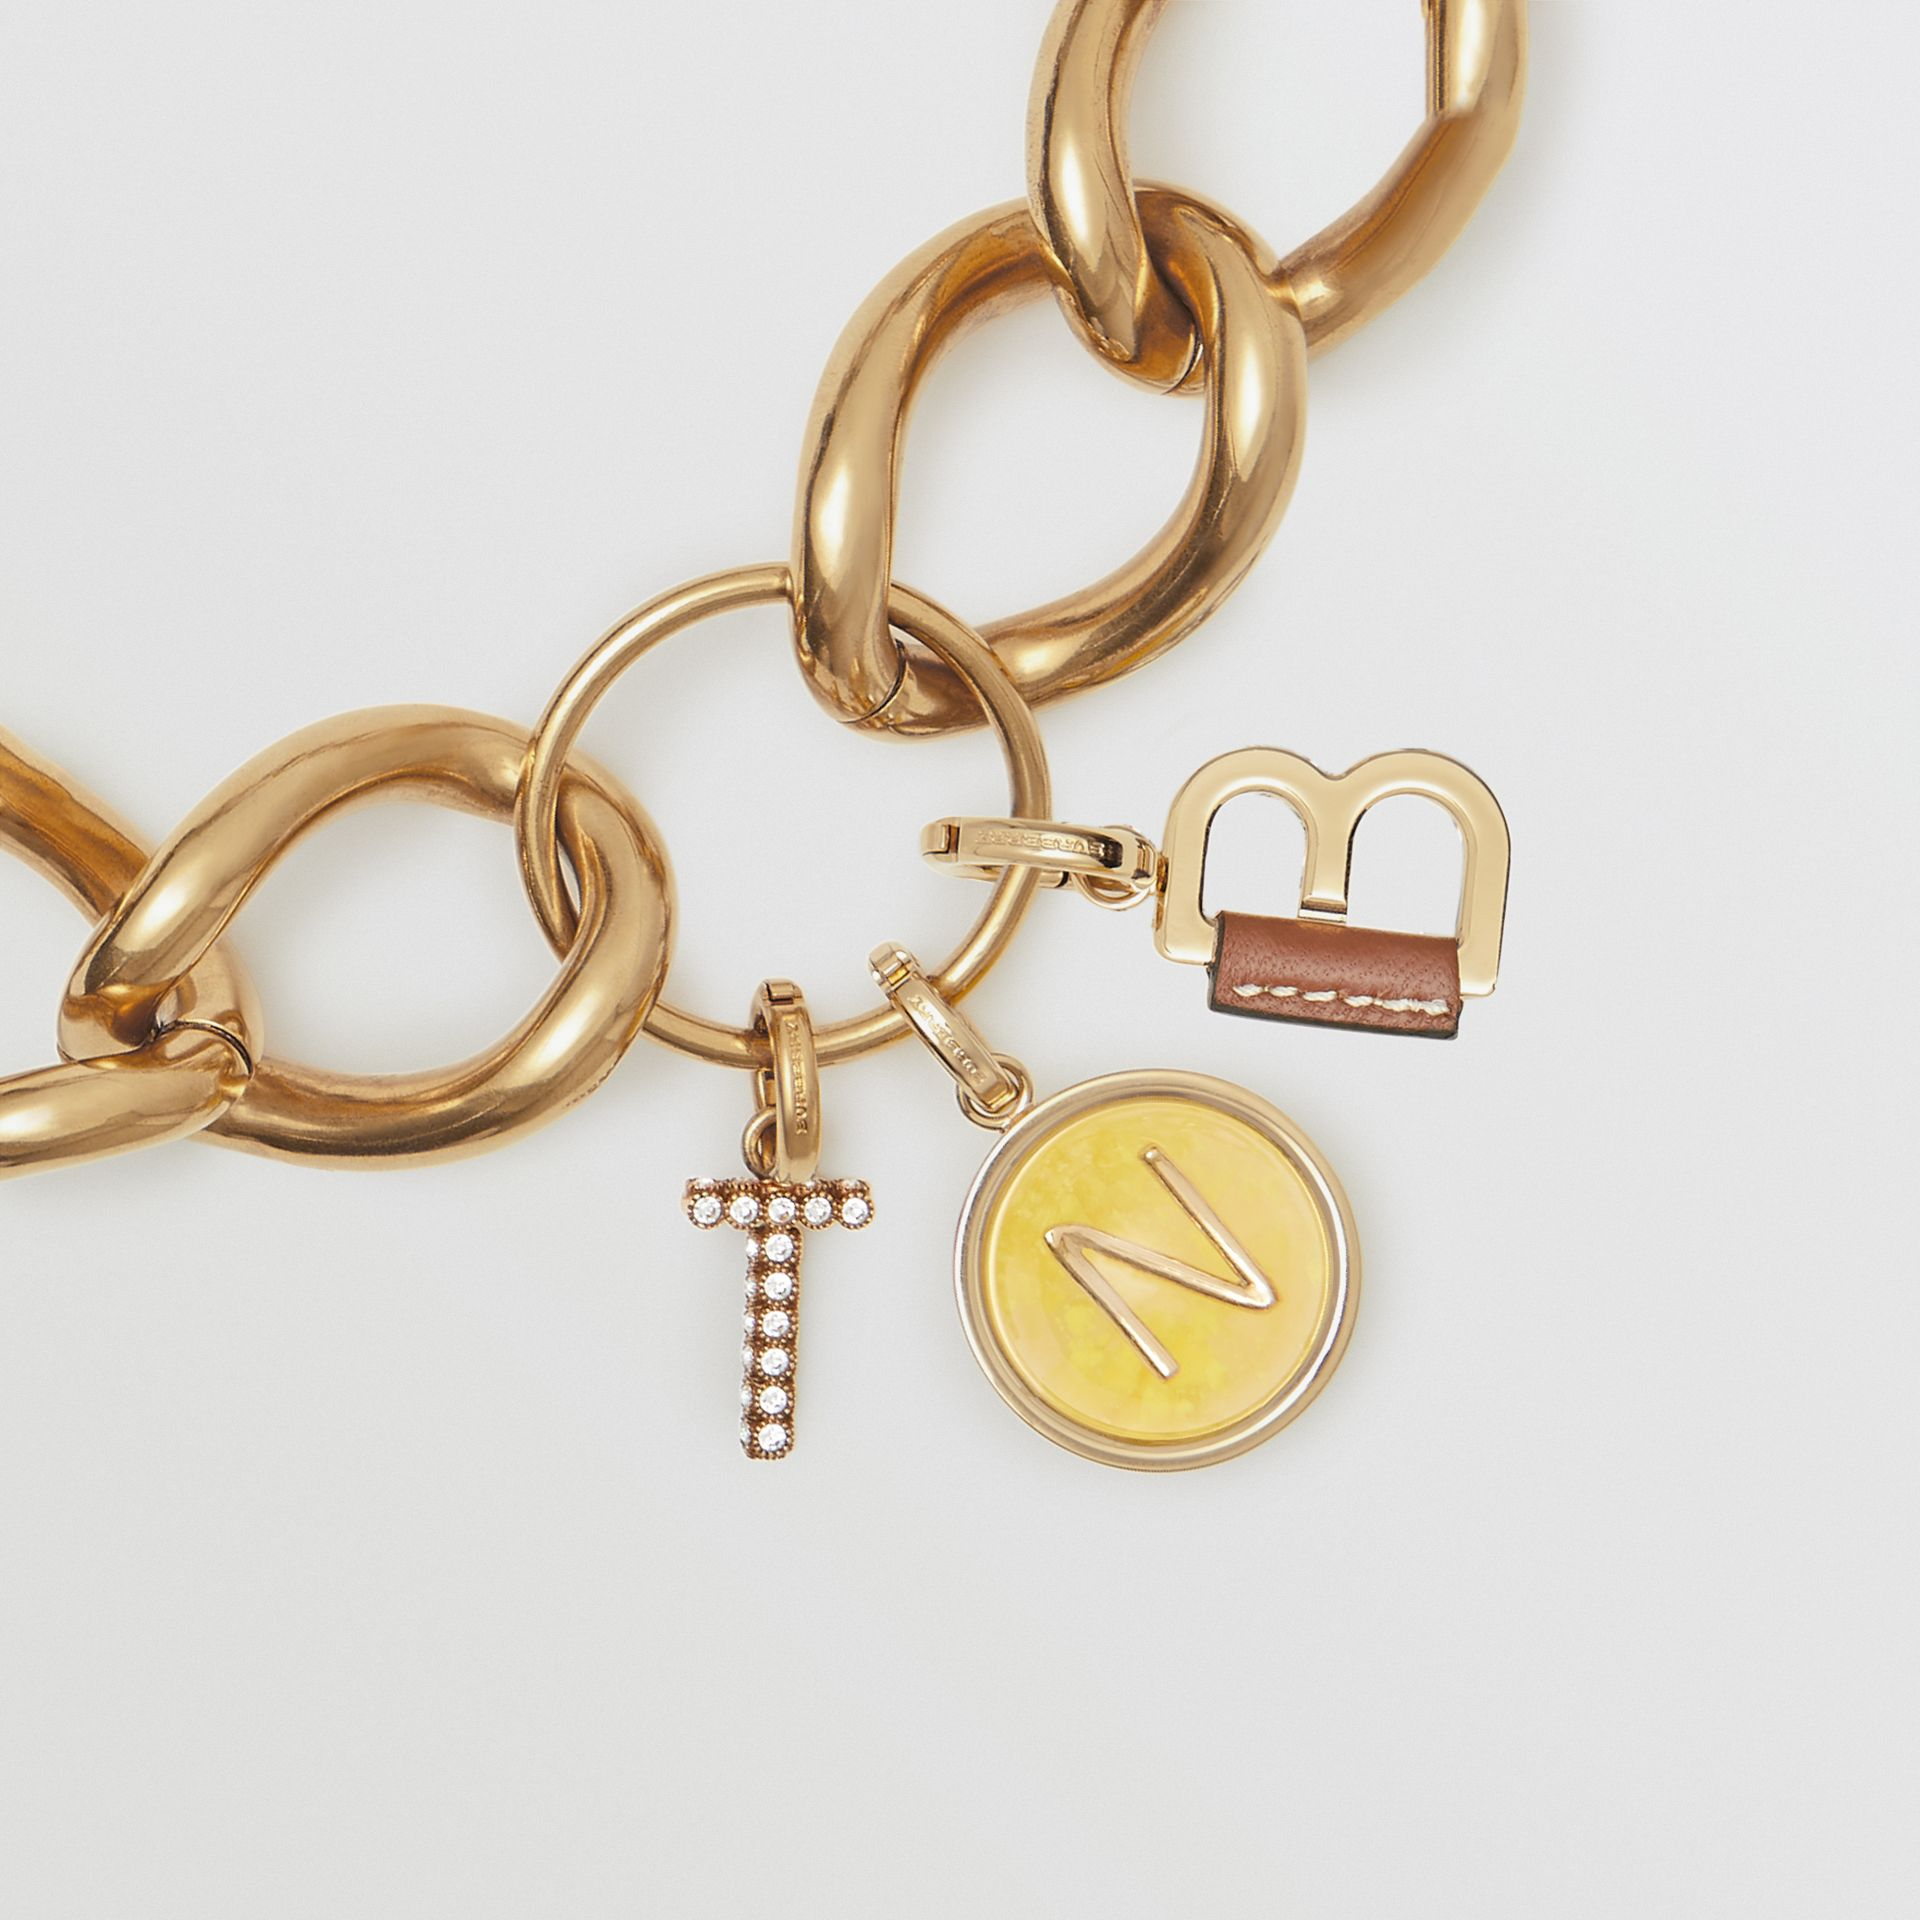 Marbled Resin 'Q' Alphabet Charm in Gold/mimosa - Women | Burberry Singapore - gallery image 2